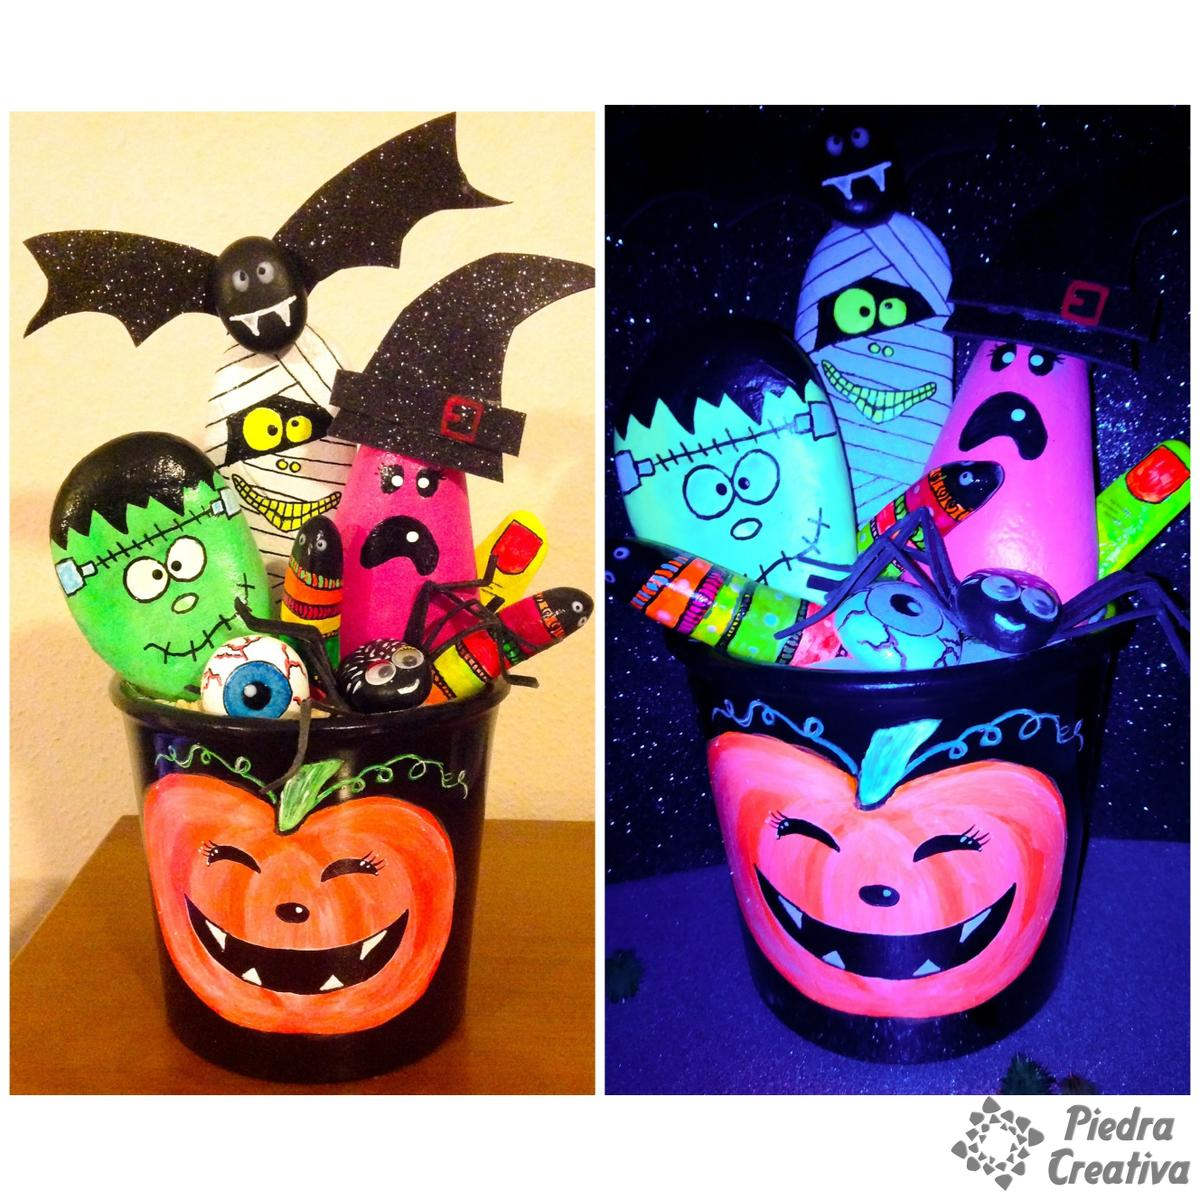 Manualidad Halloween pinturas fluorescentes de PiedraCreativa